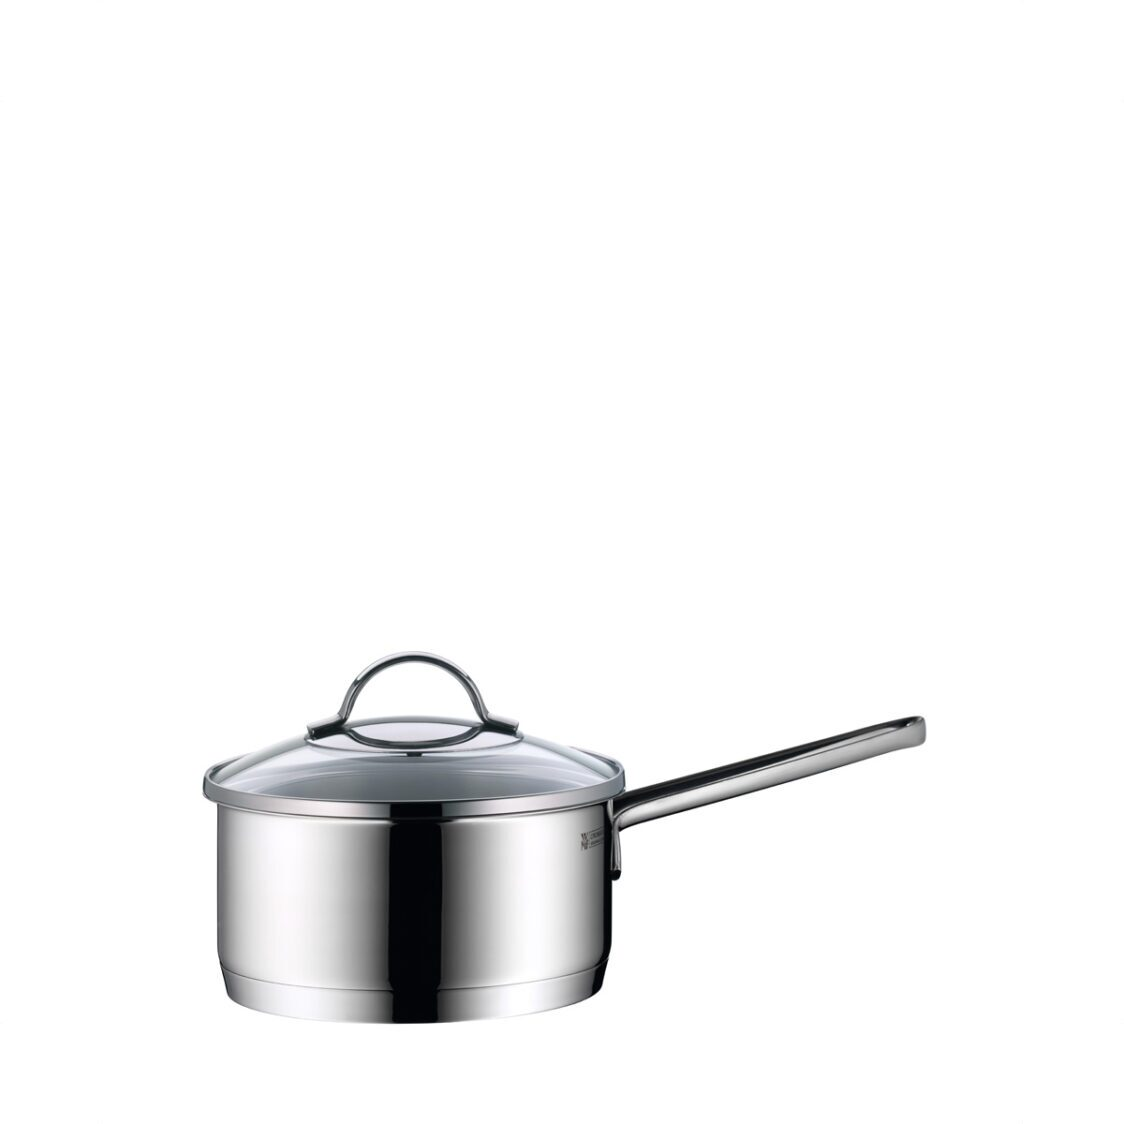 WMF Provence Plus Saucepan 16cm with Cover